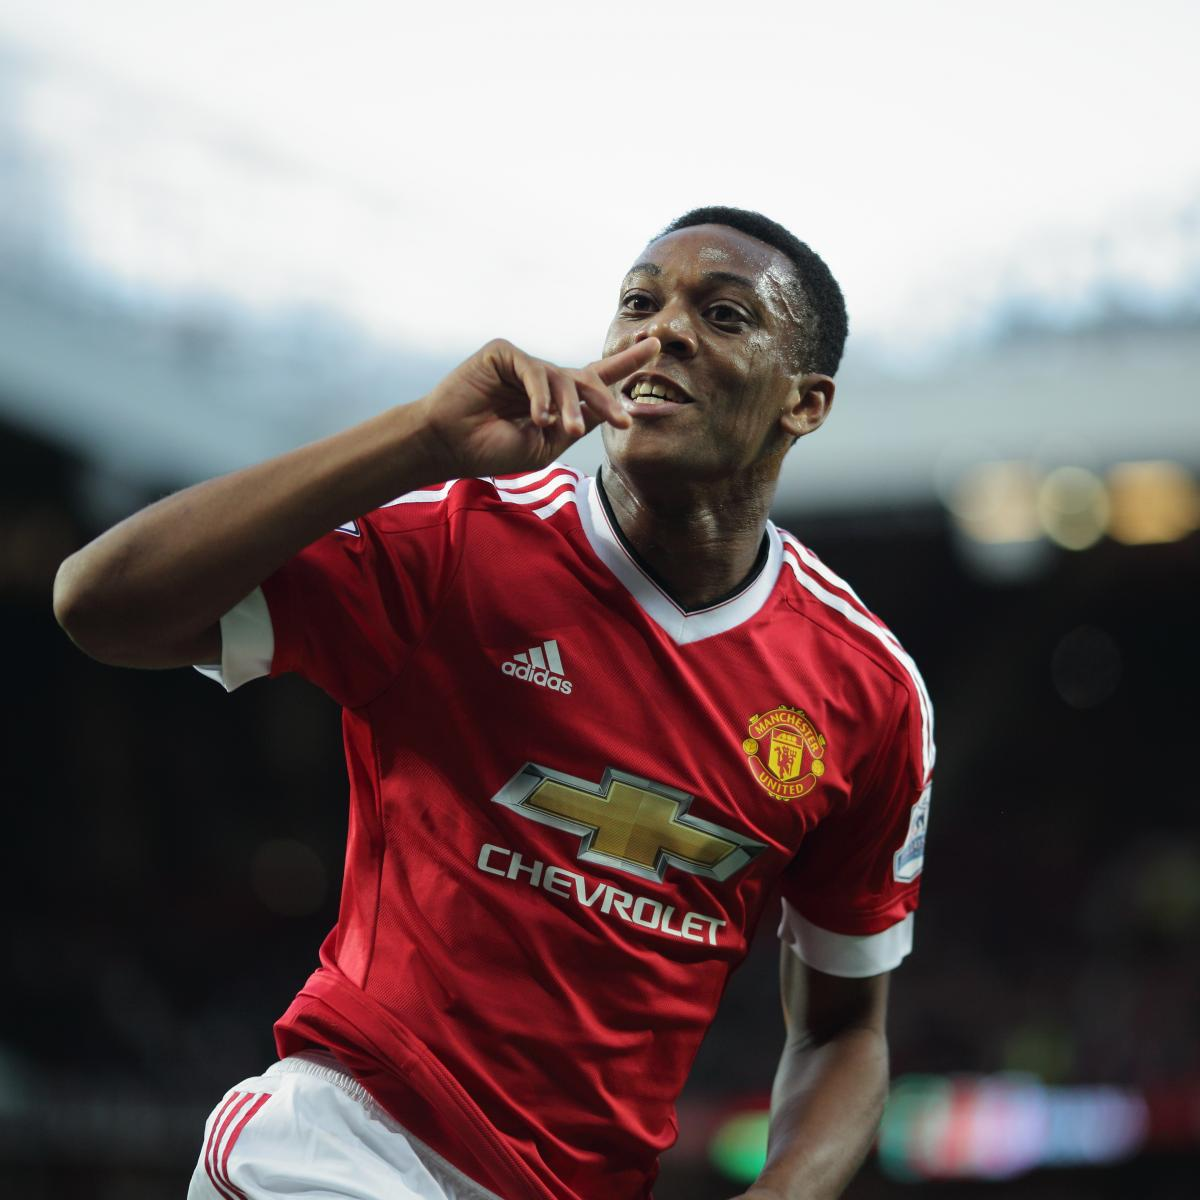 Manchester United S Anthony Martial Talks Debut Goal Vs: Manchester United Must Embrace The Qualities Of Anthony